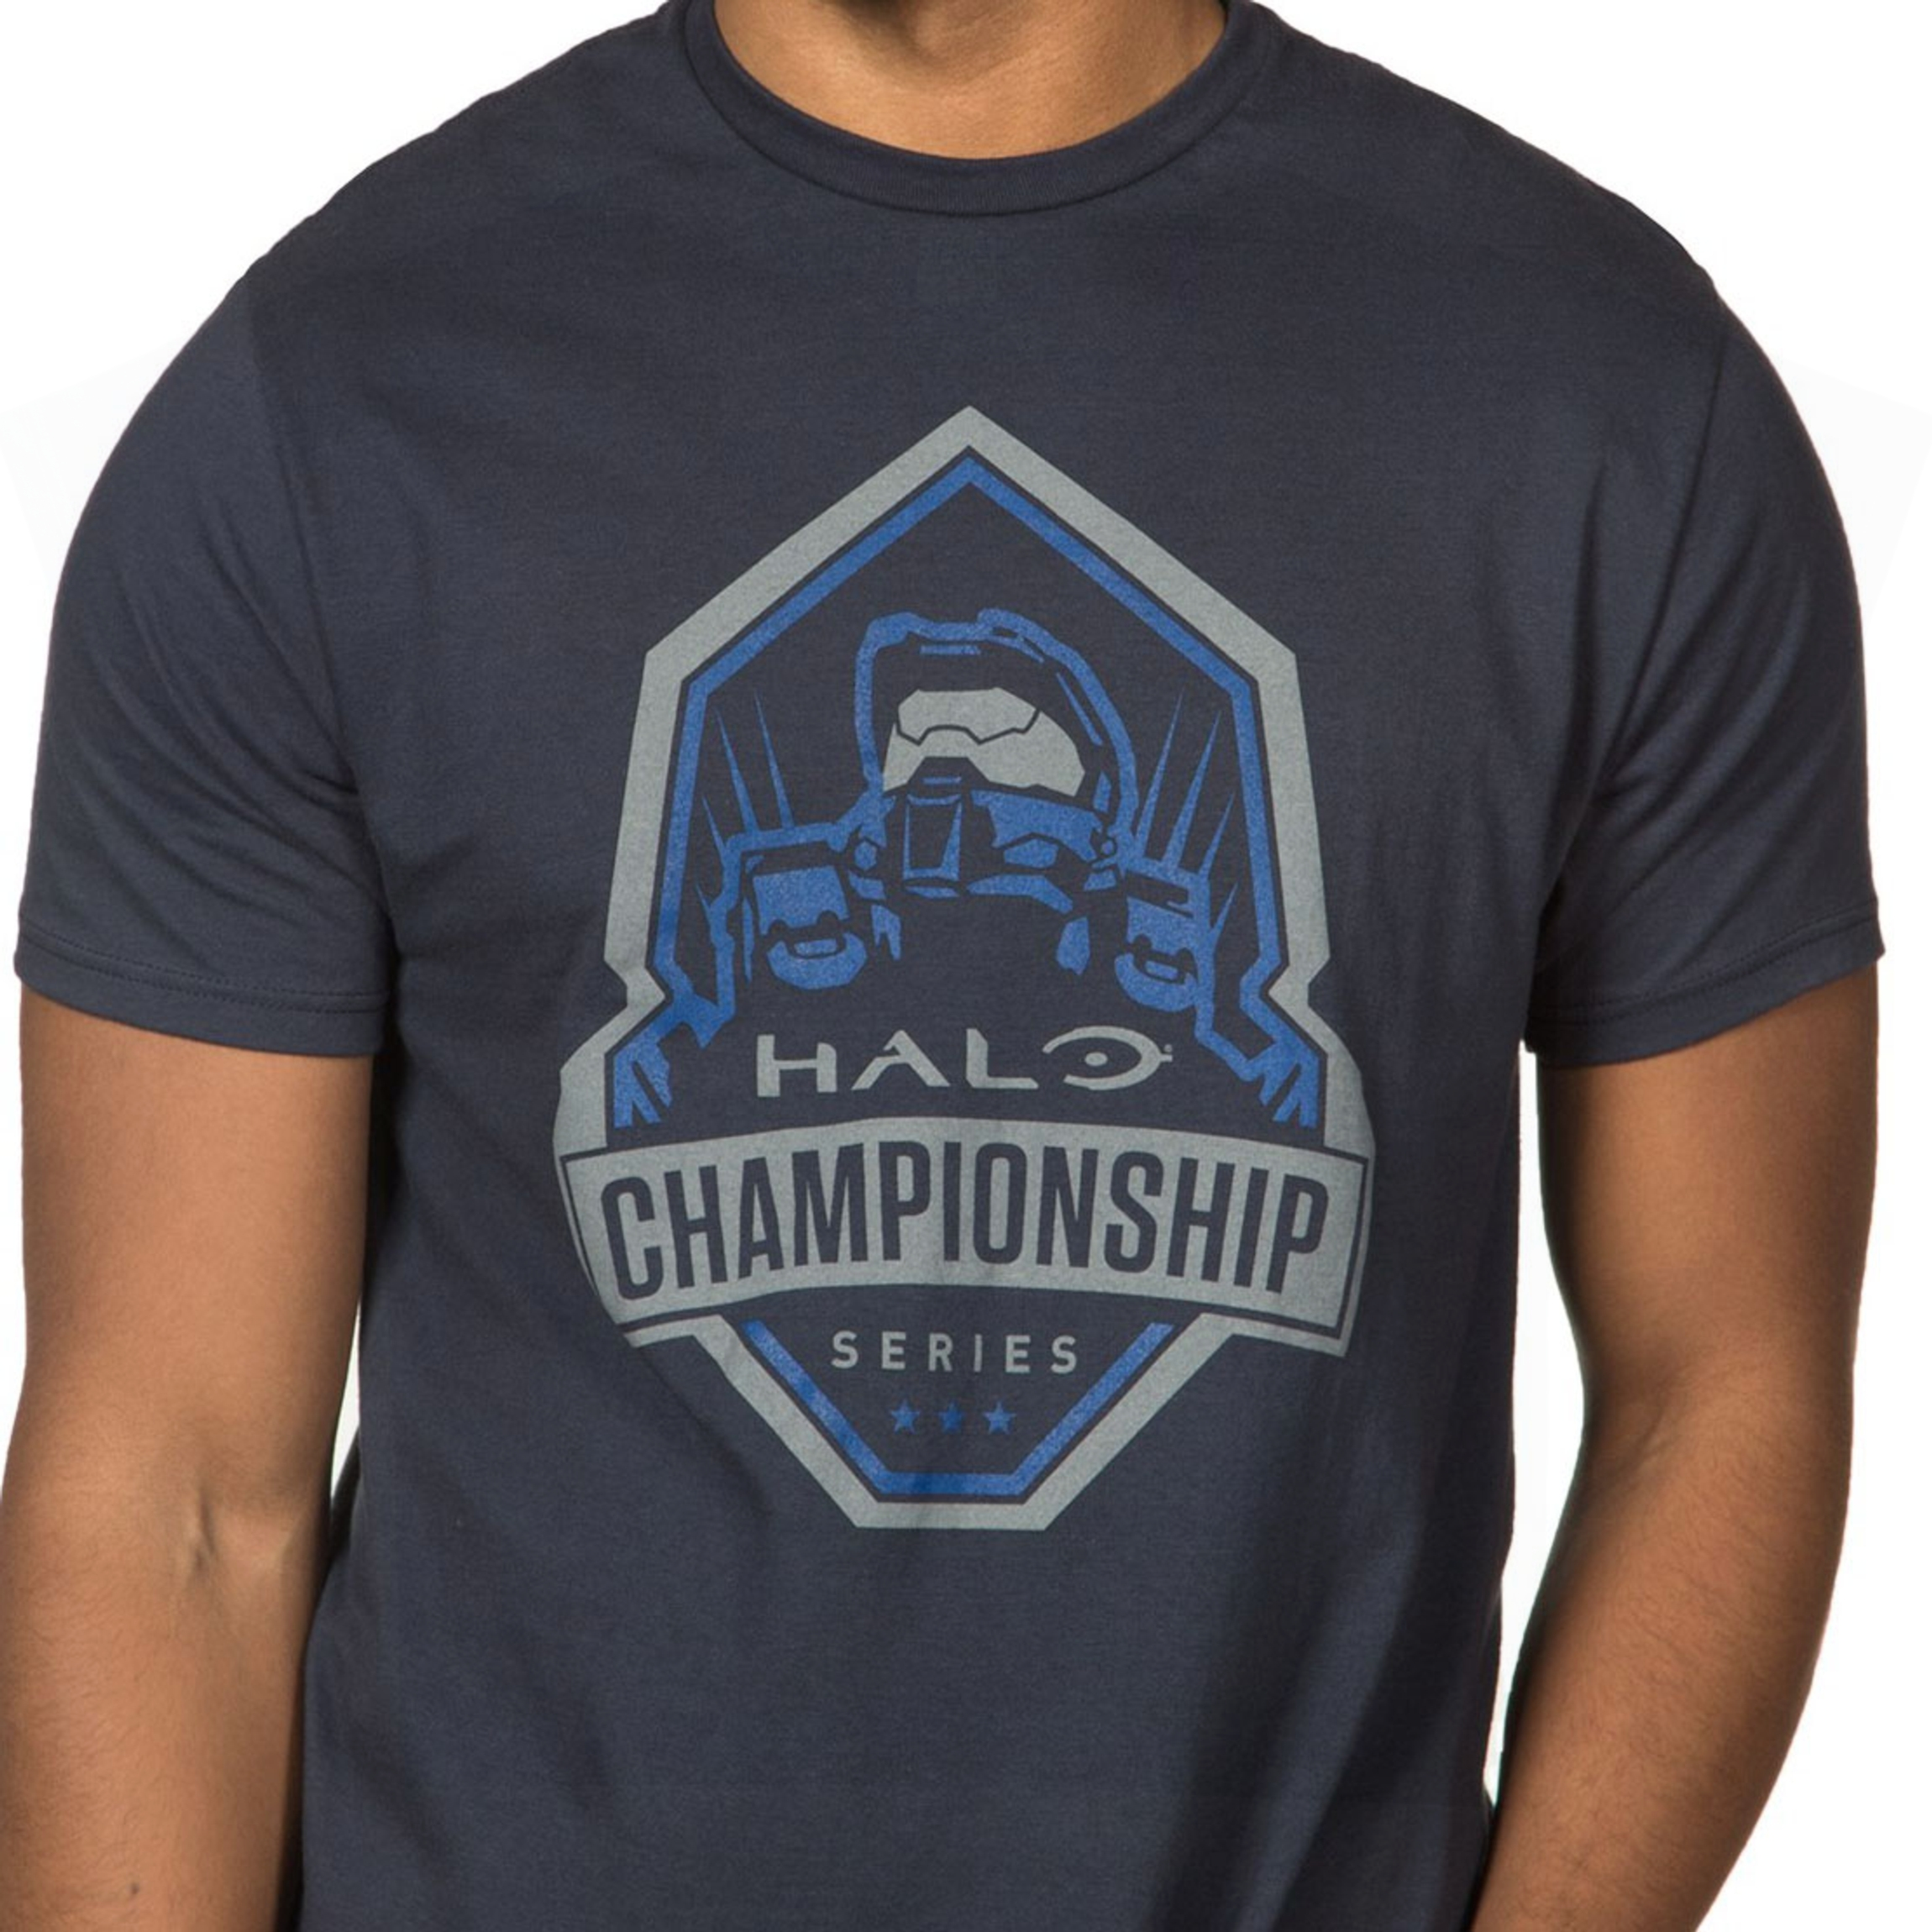 Halo Championship Series Blue Team T-shirt